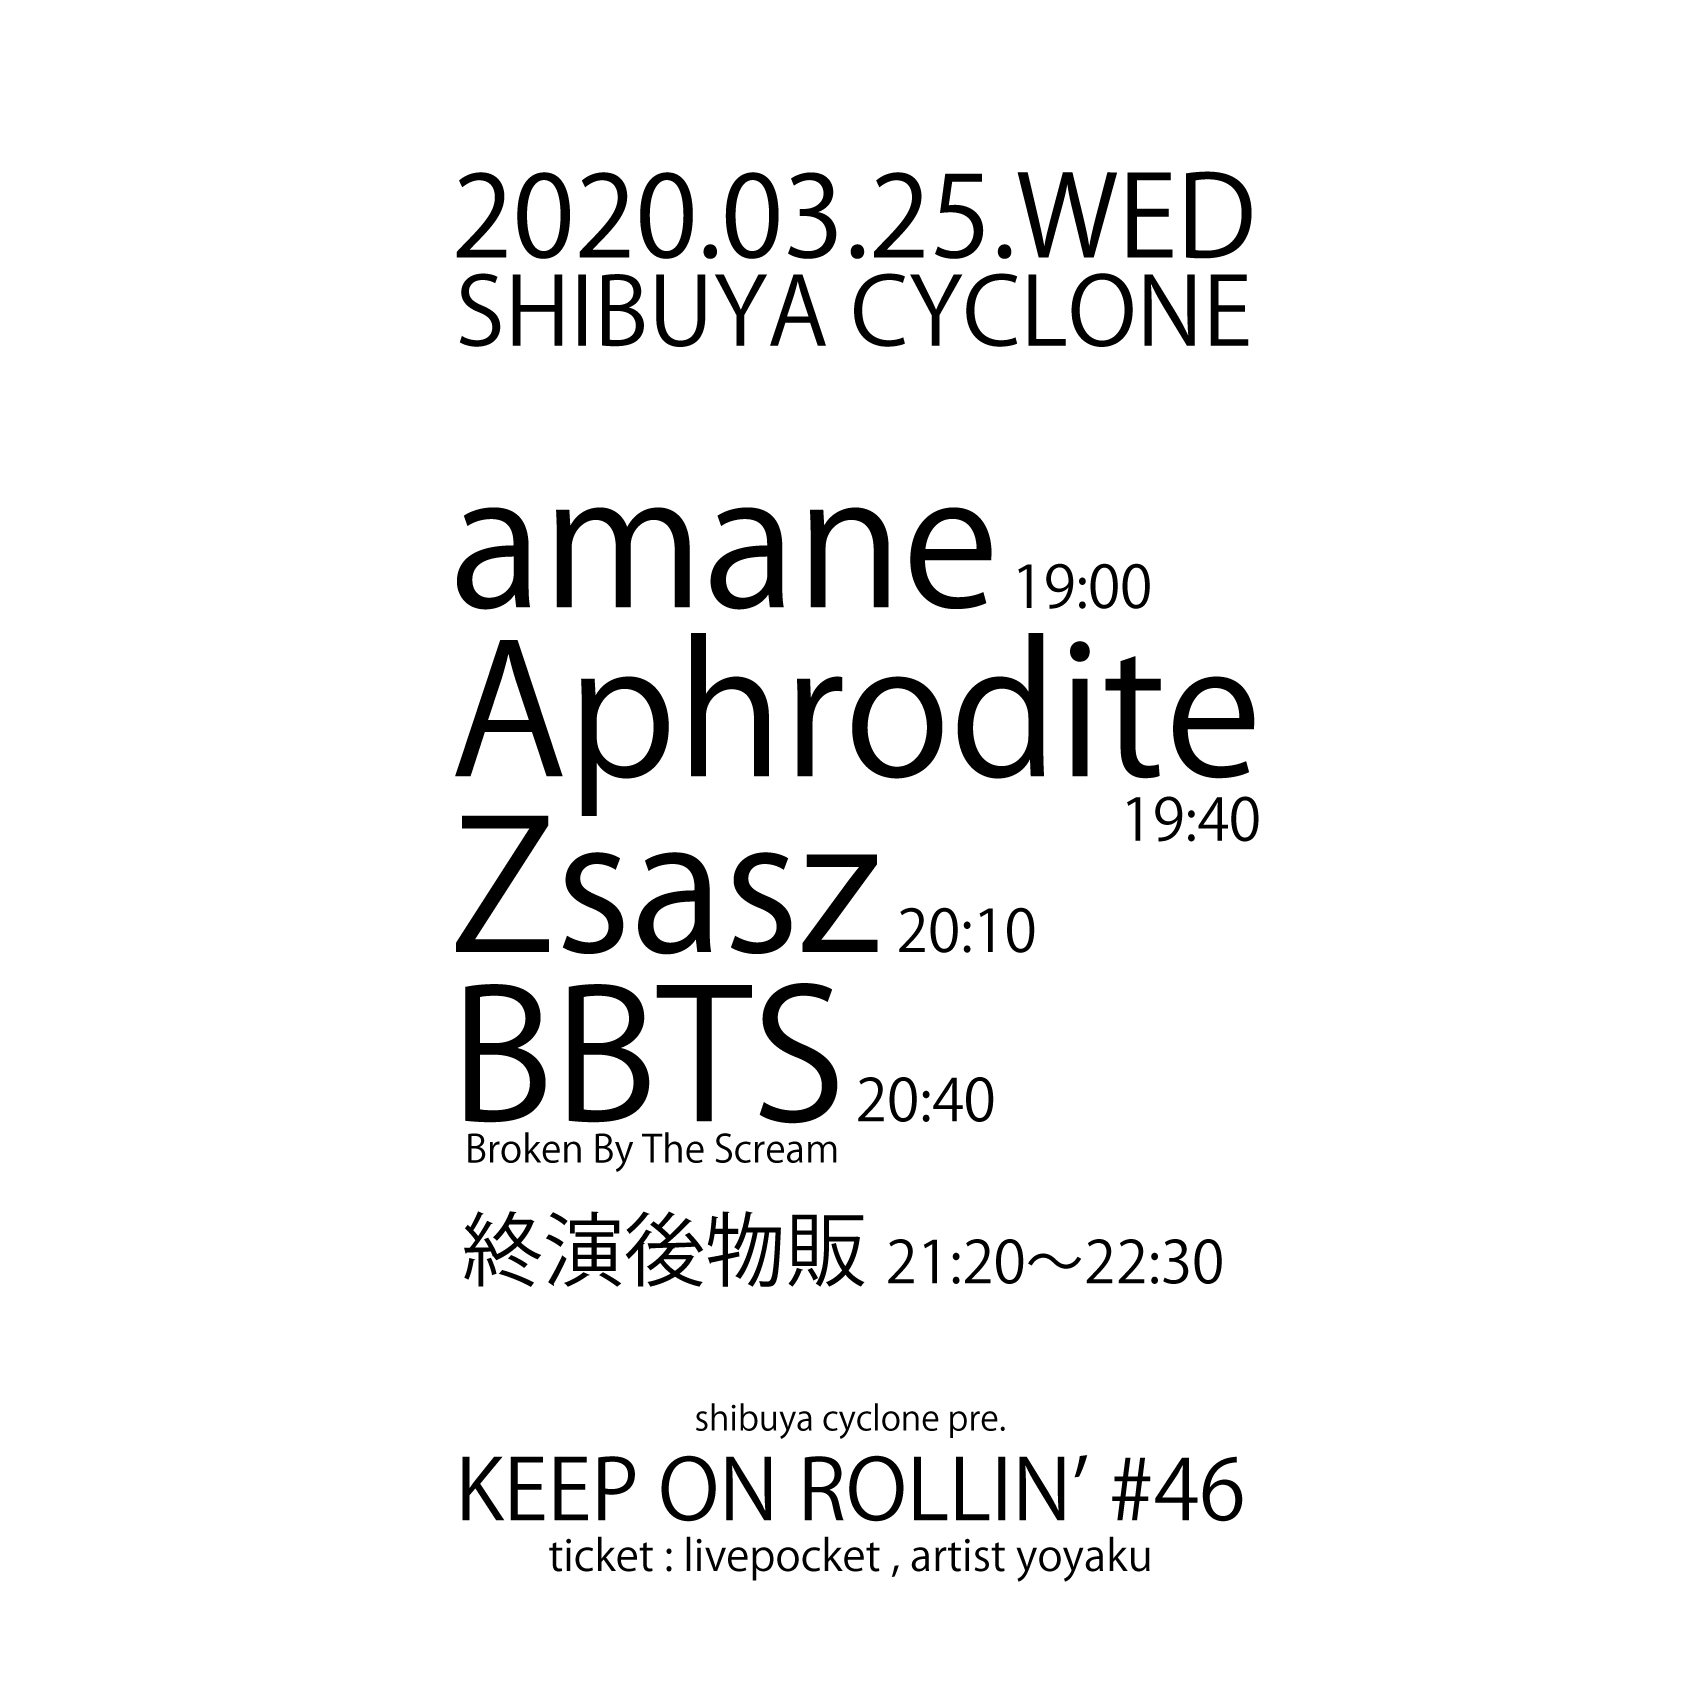 SHIBUYA CYCLONE pre. KEEP ON ROLLIN' #46